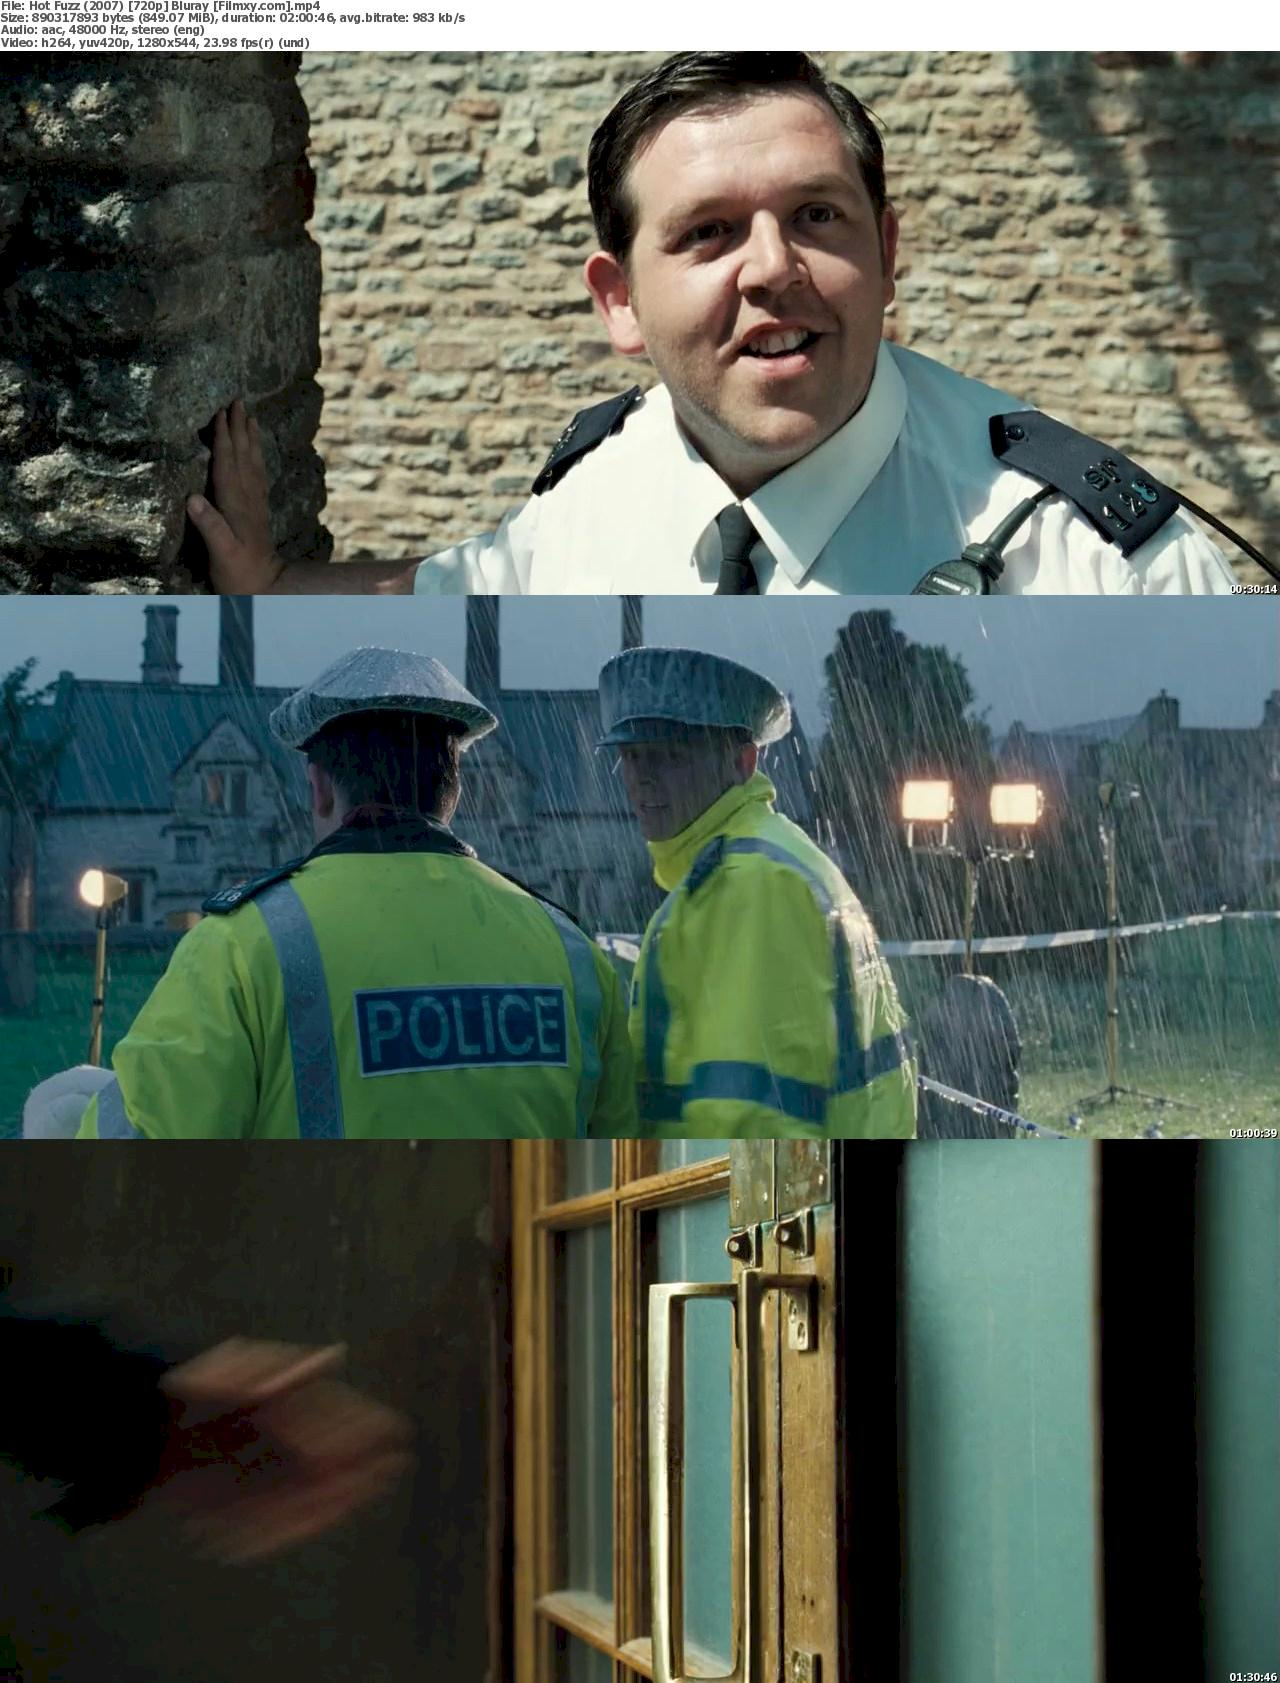 Hot Fuzz (2007) 720p & 1080p Bluray Free Download 720p Screenshot